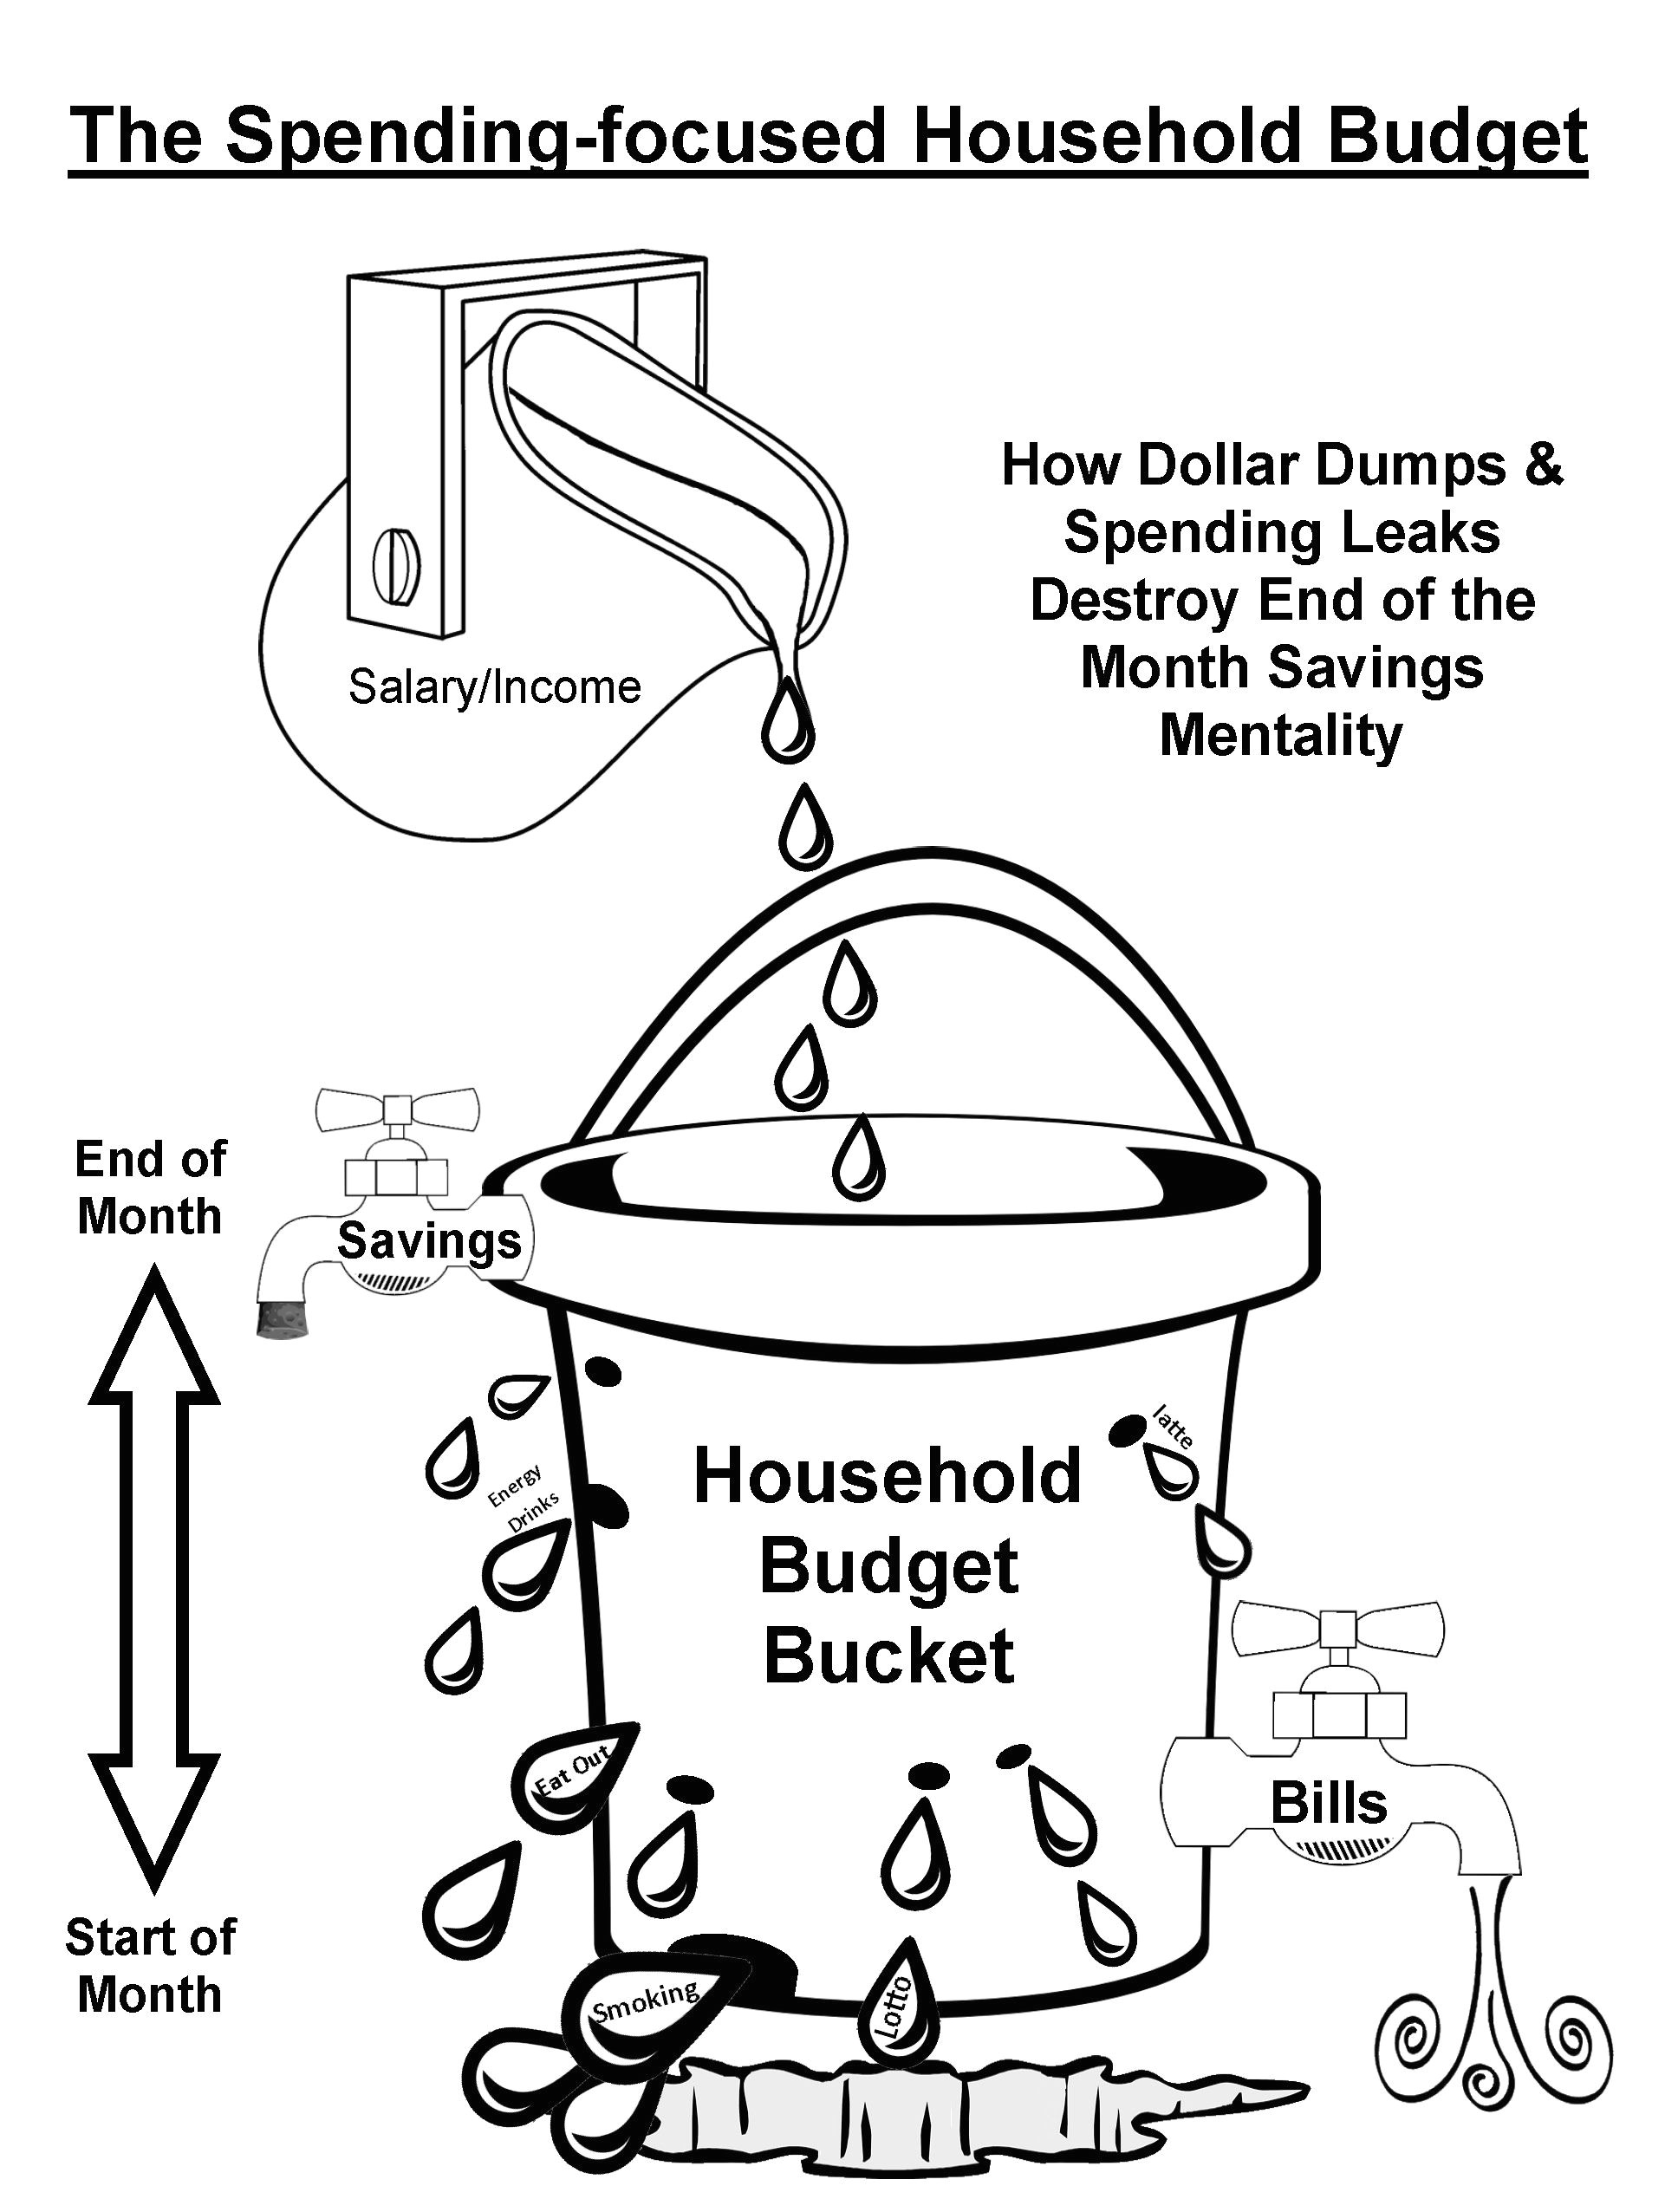 the leaky spending focused household budget bucket savings is delayed till the end